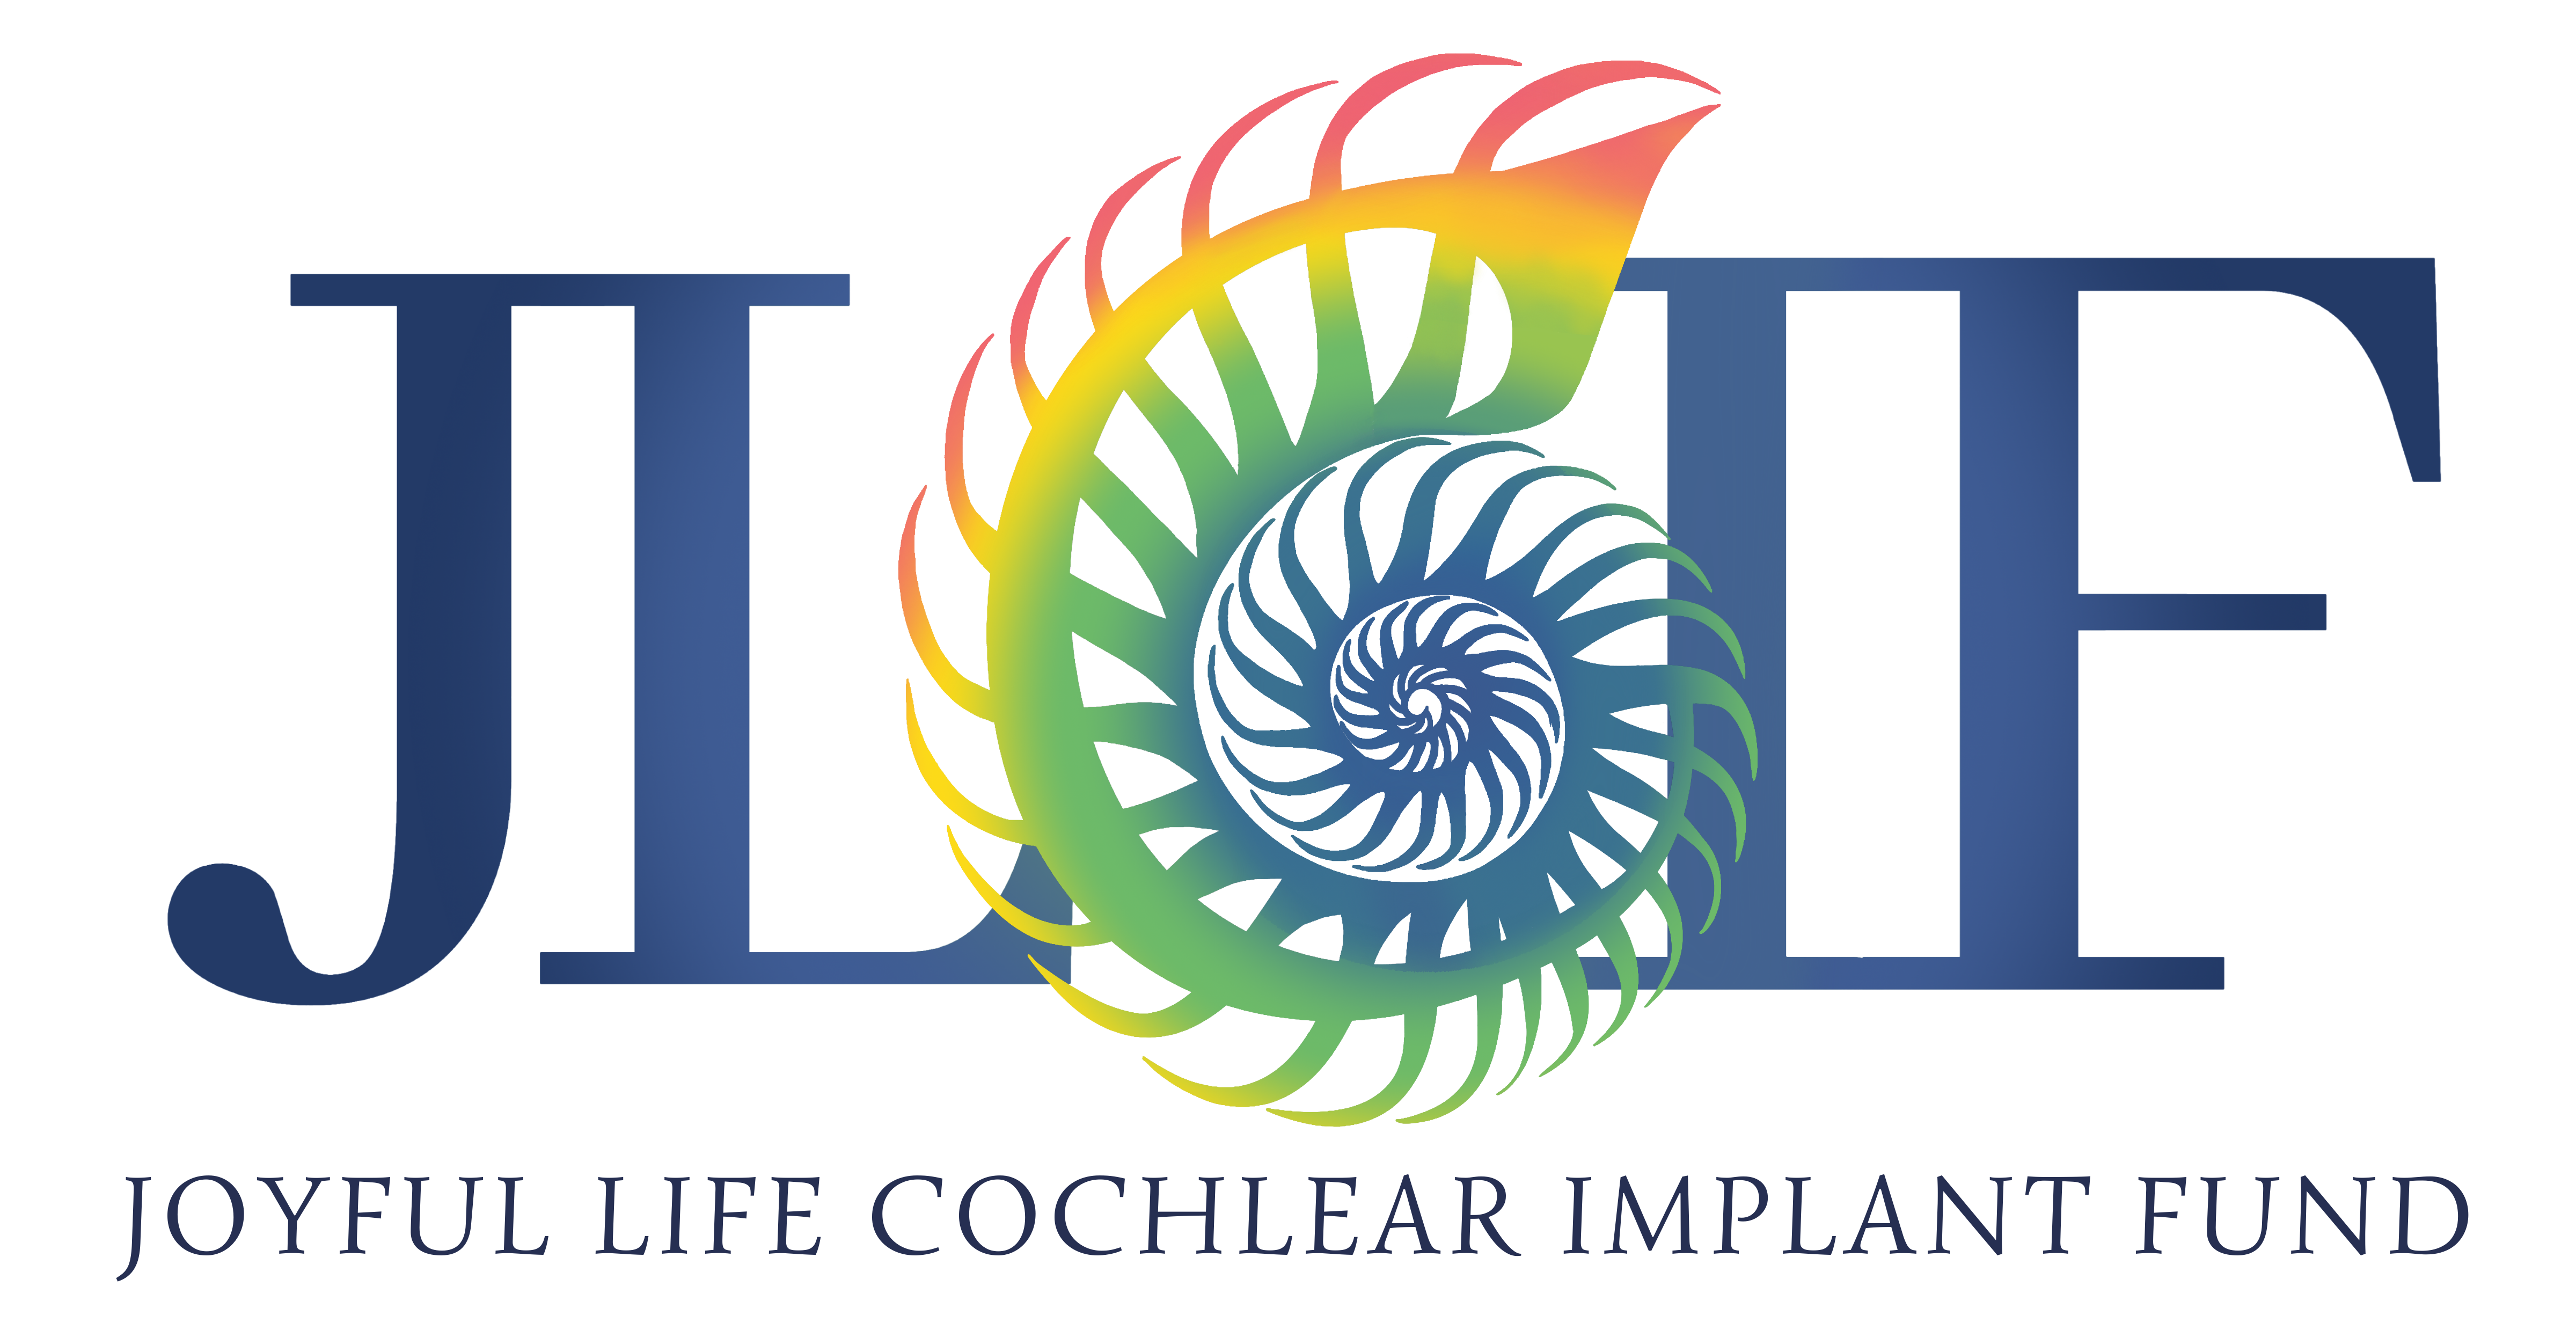 Joyful Life Cochlear Implant Fund